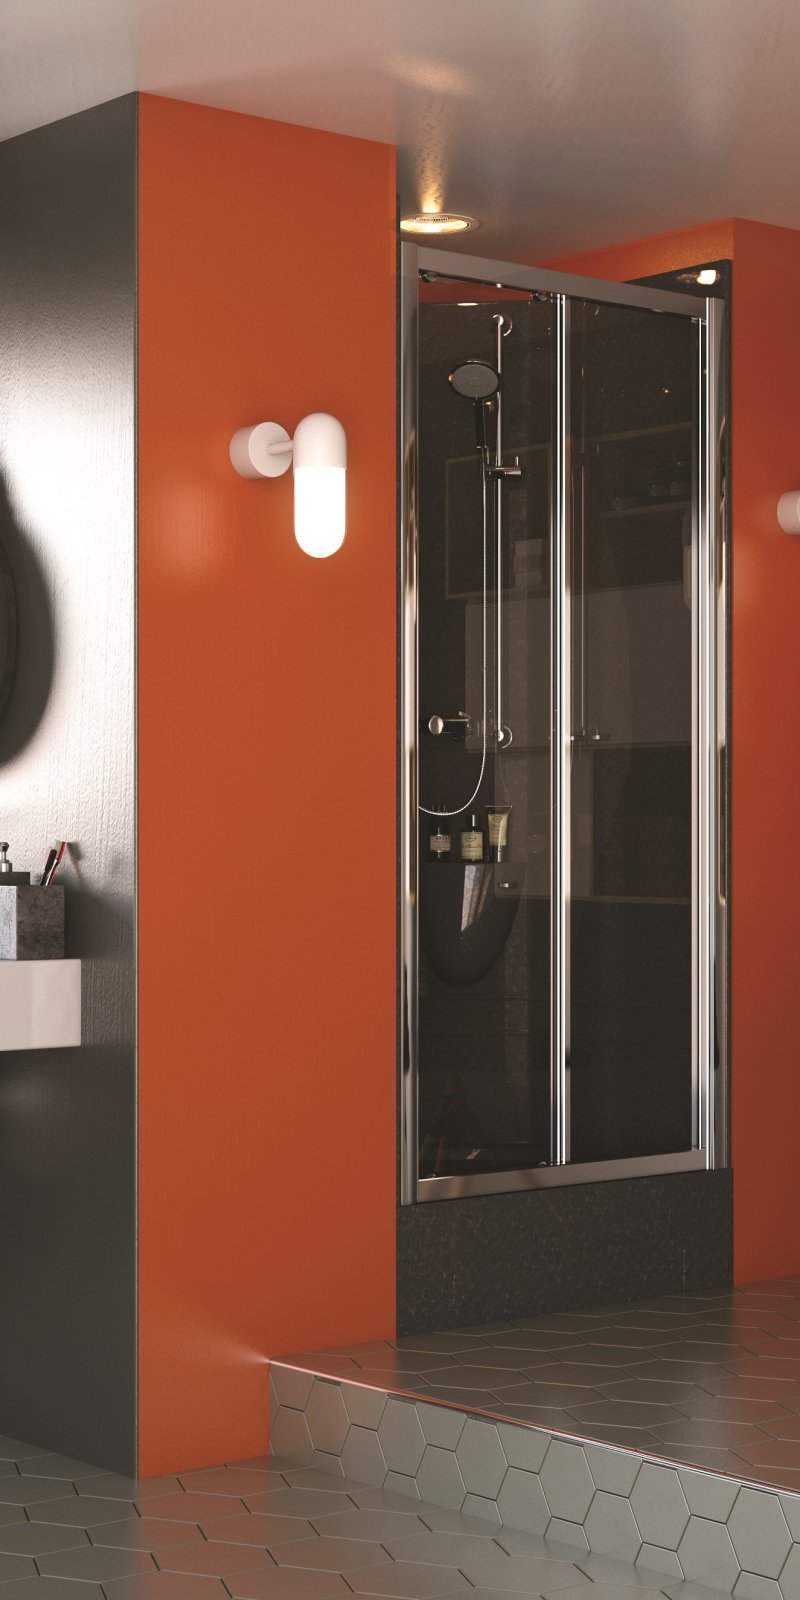 Durable no tile solution showerpod is the ideal choice for Student accommodation